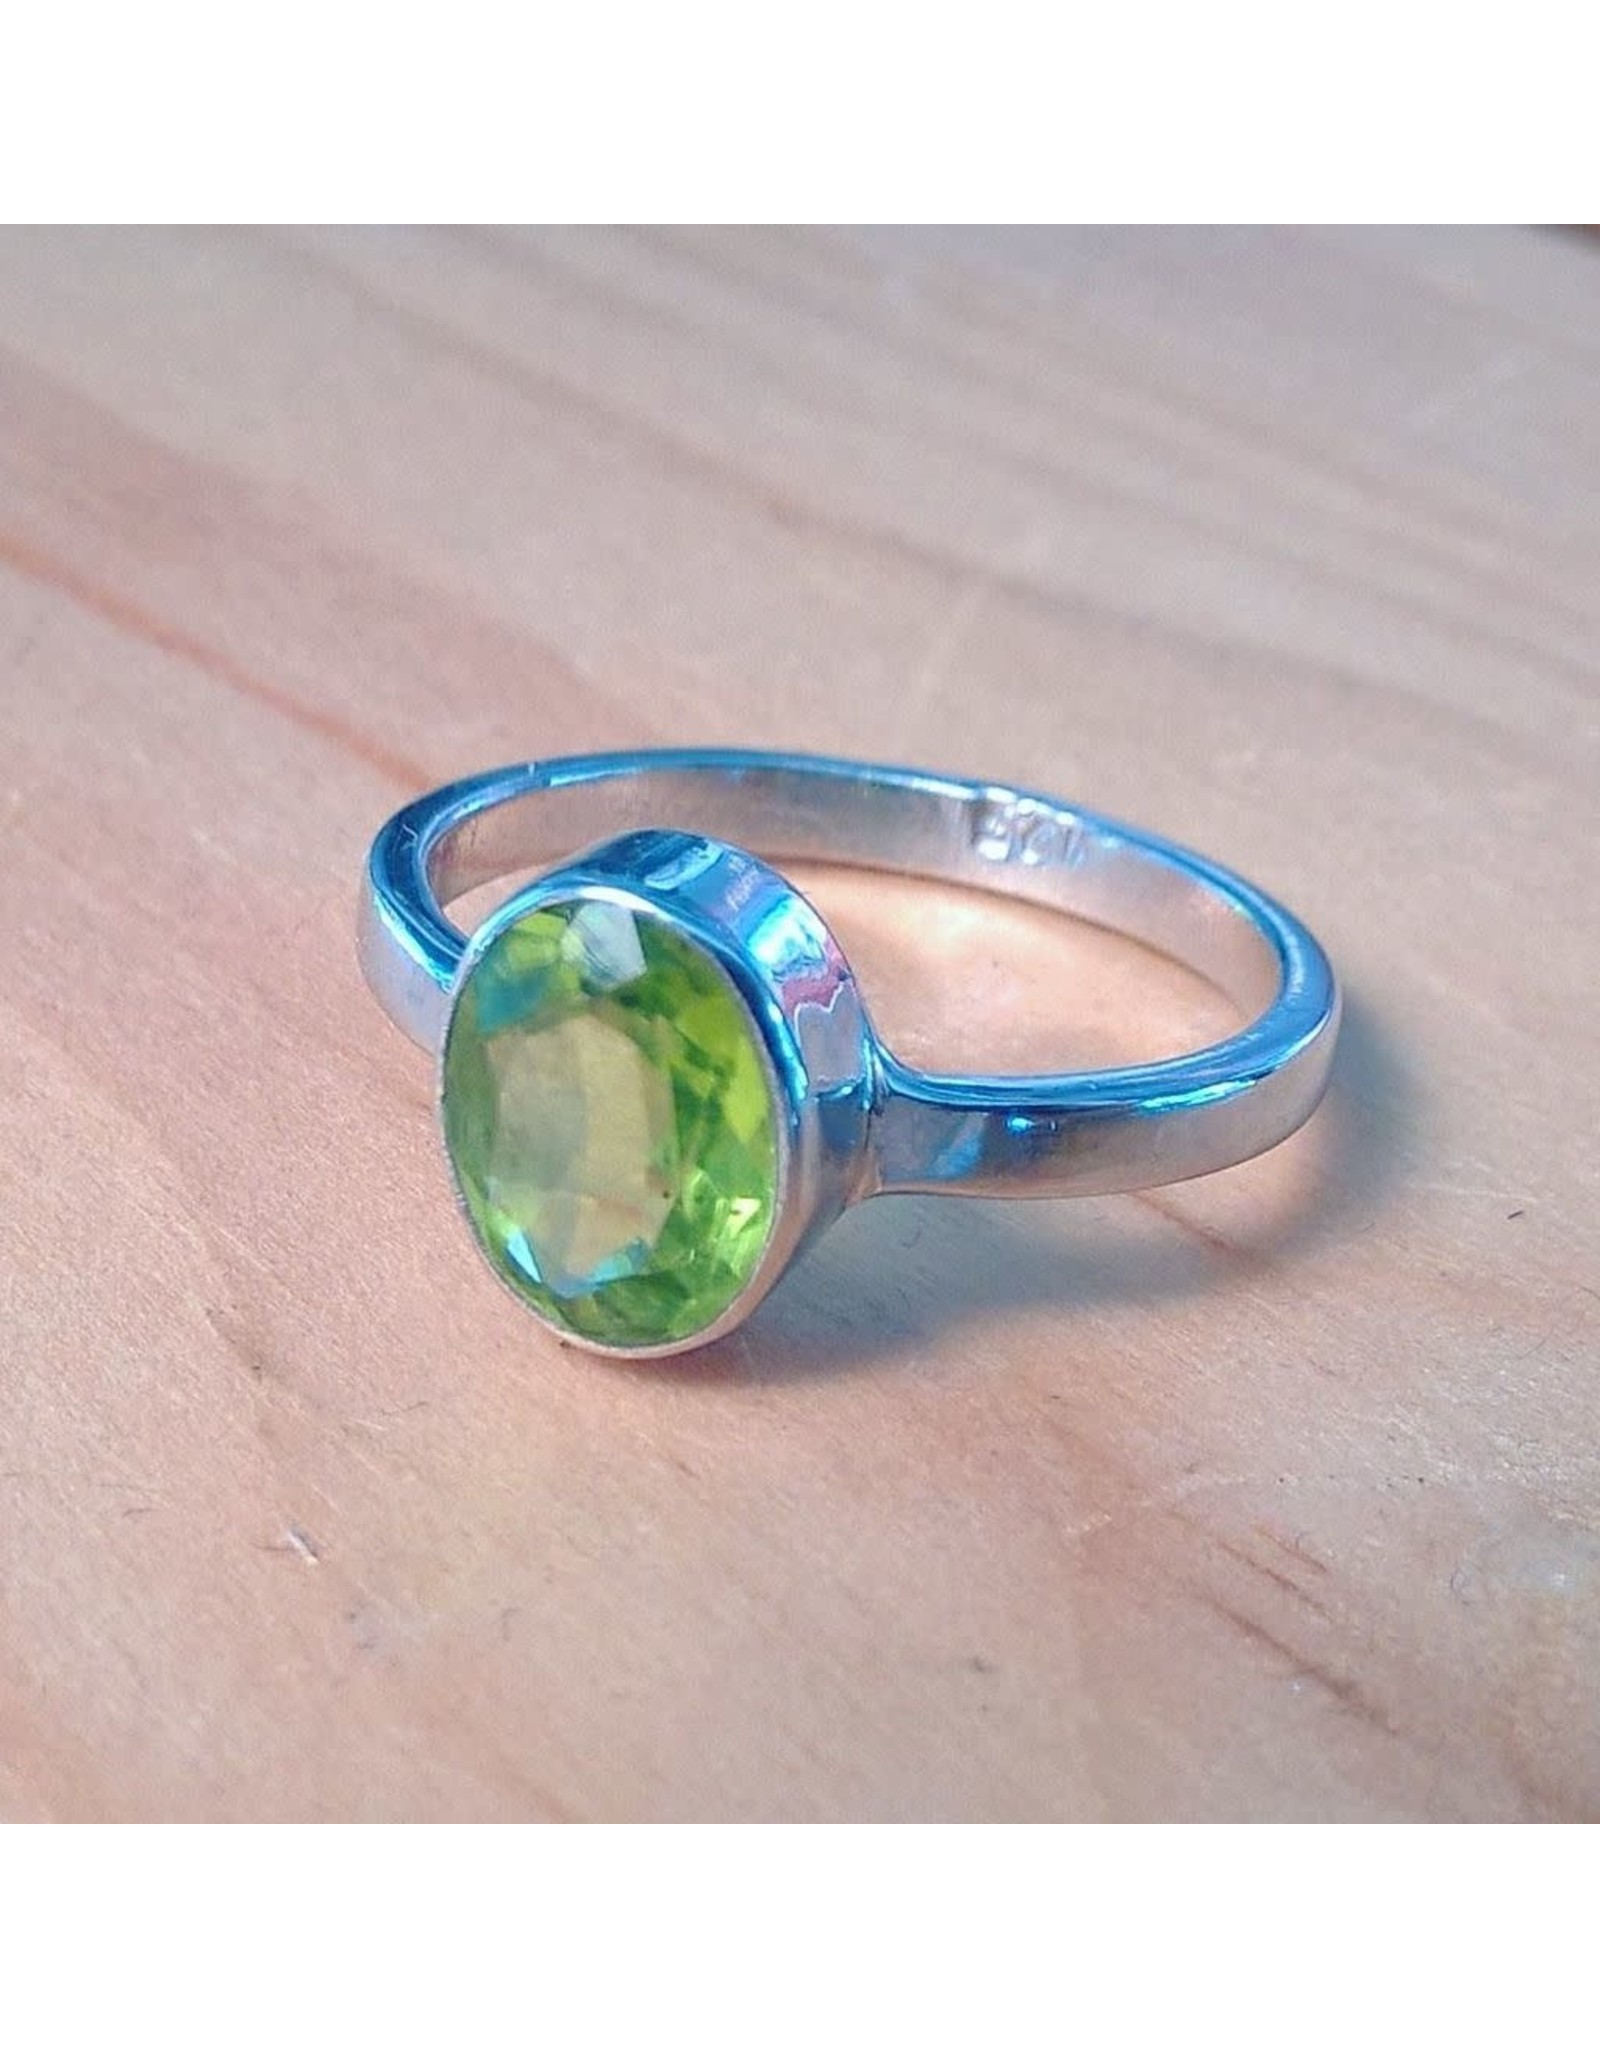 Chris Gillrie Wander Through the Woods Ring. Solid Silver with Peridot. Size 6